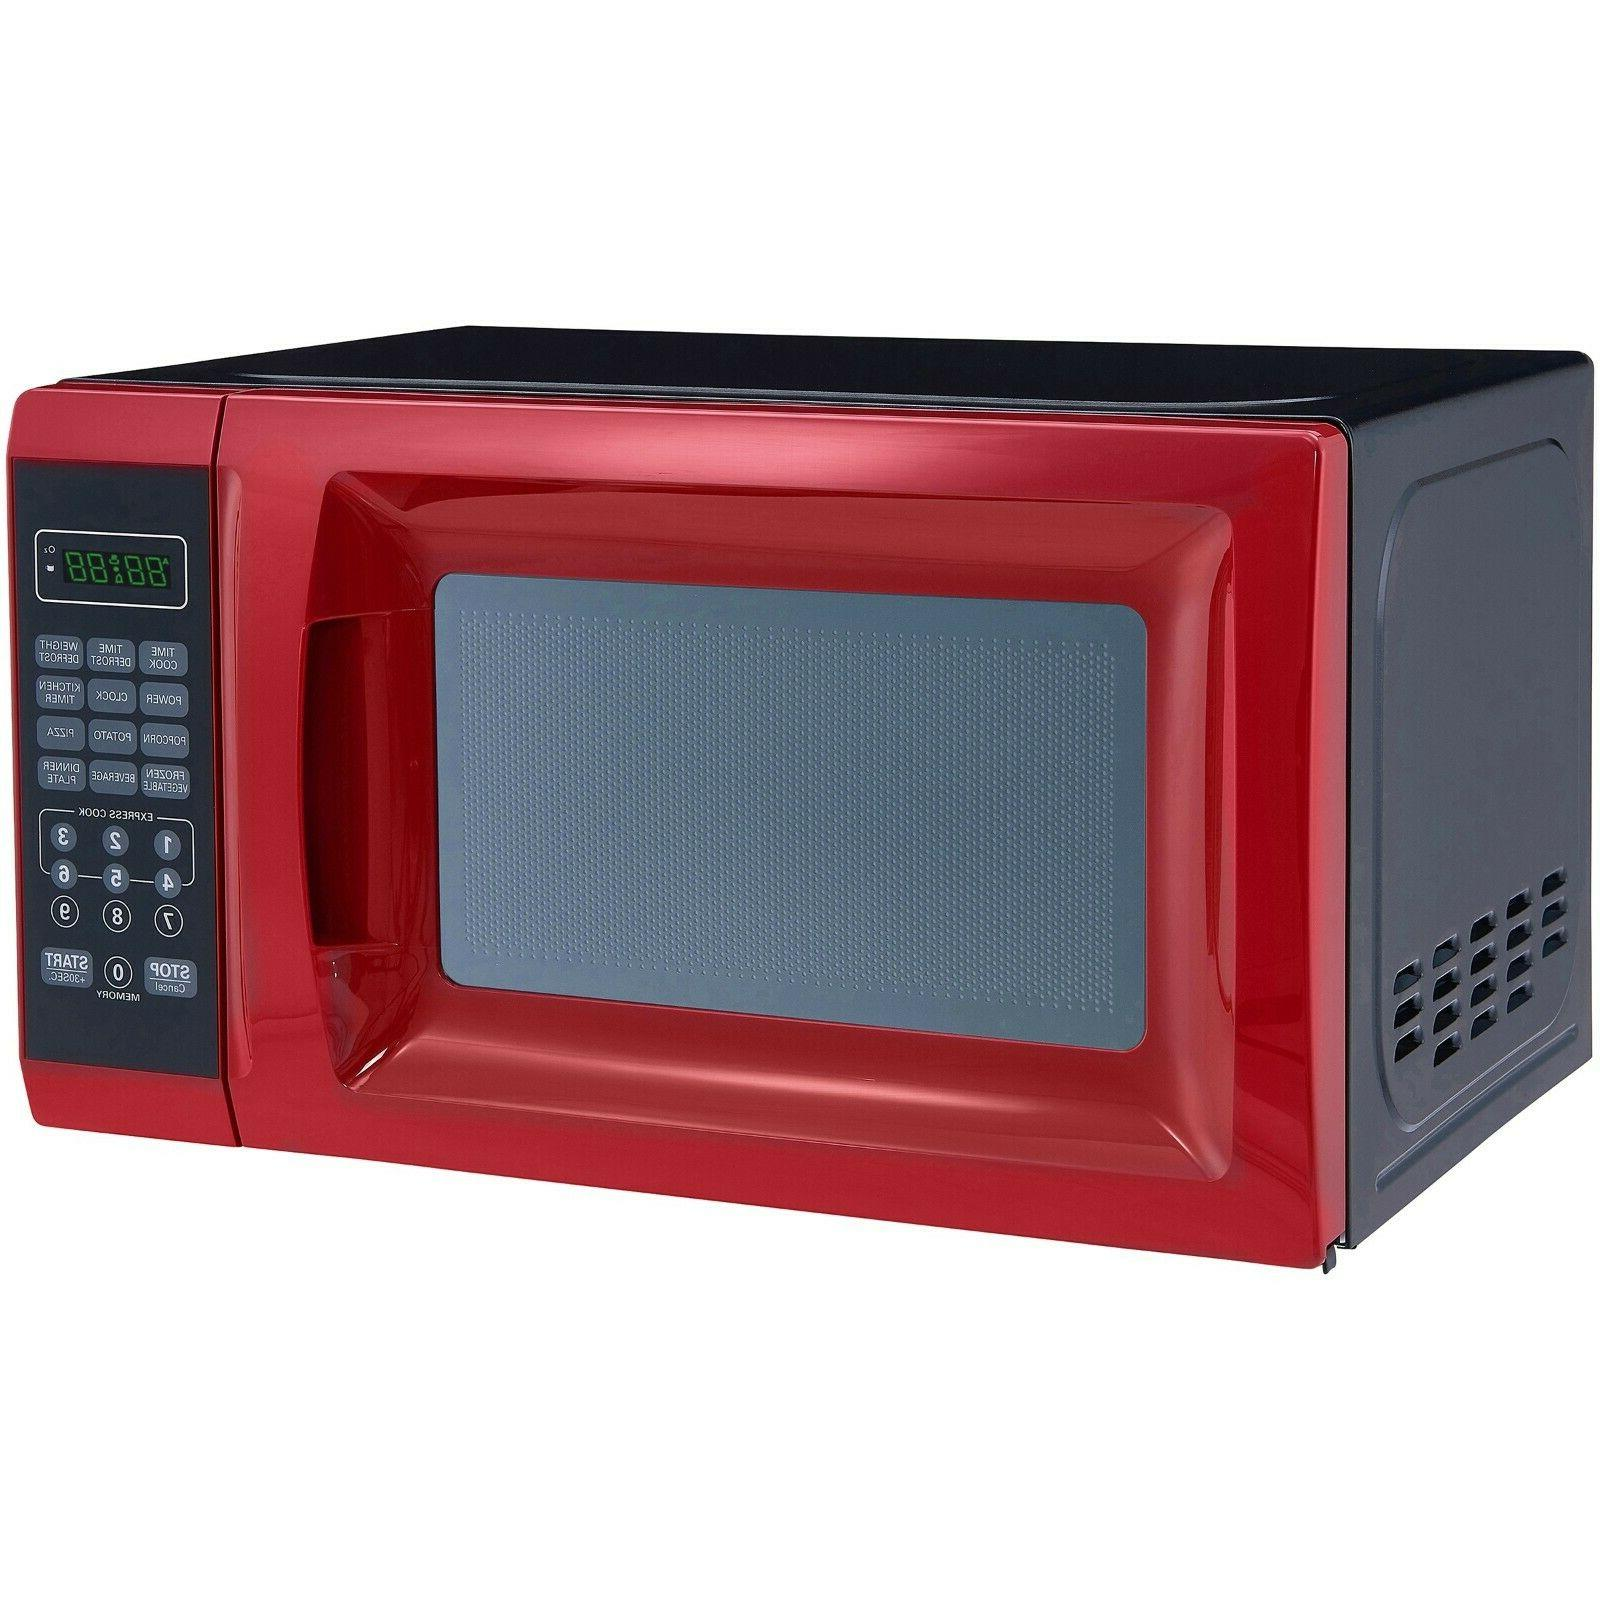 0.7 Ft. Red Microwave Power Levels, Kitchen